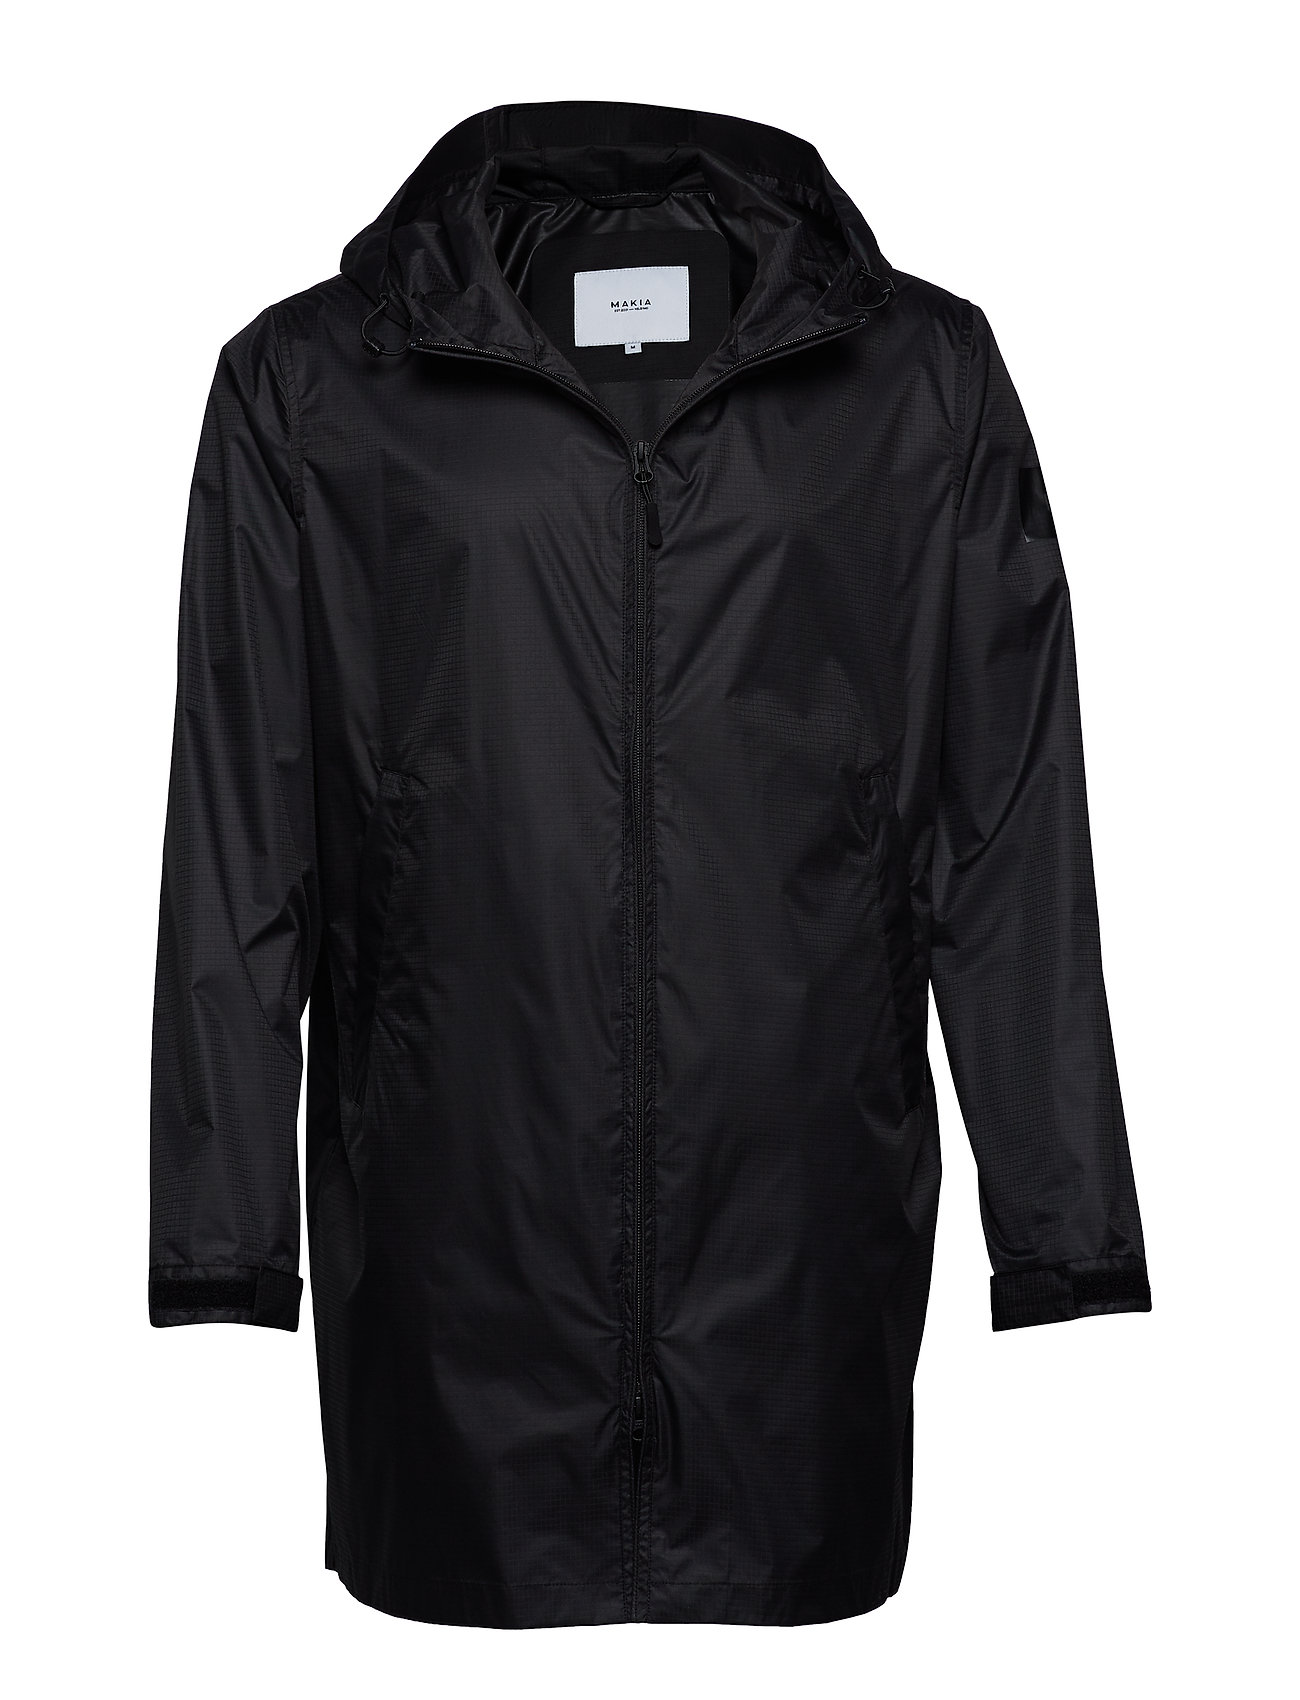 Makia GUST JACKET - BLACK